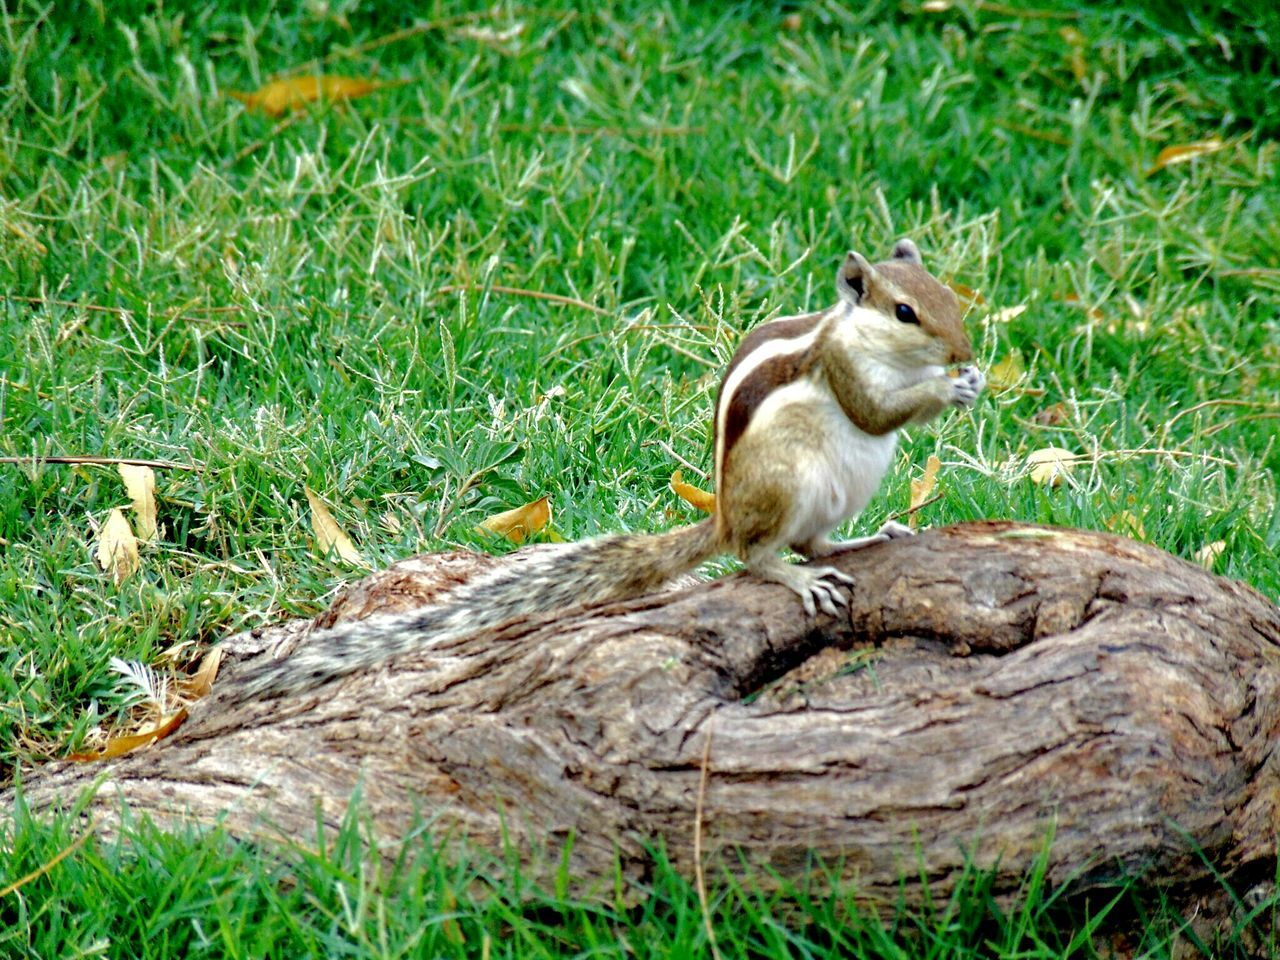 grass, one animal, animal wildlife, animals in the wild, animal themes, sitting, outdoors, squirrel, mammal, no people, nature, day, full length, eating